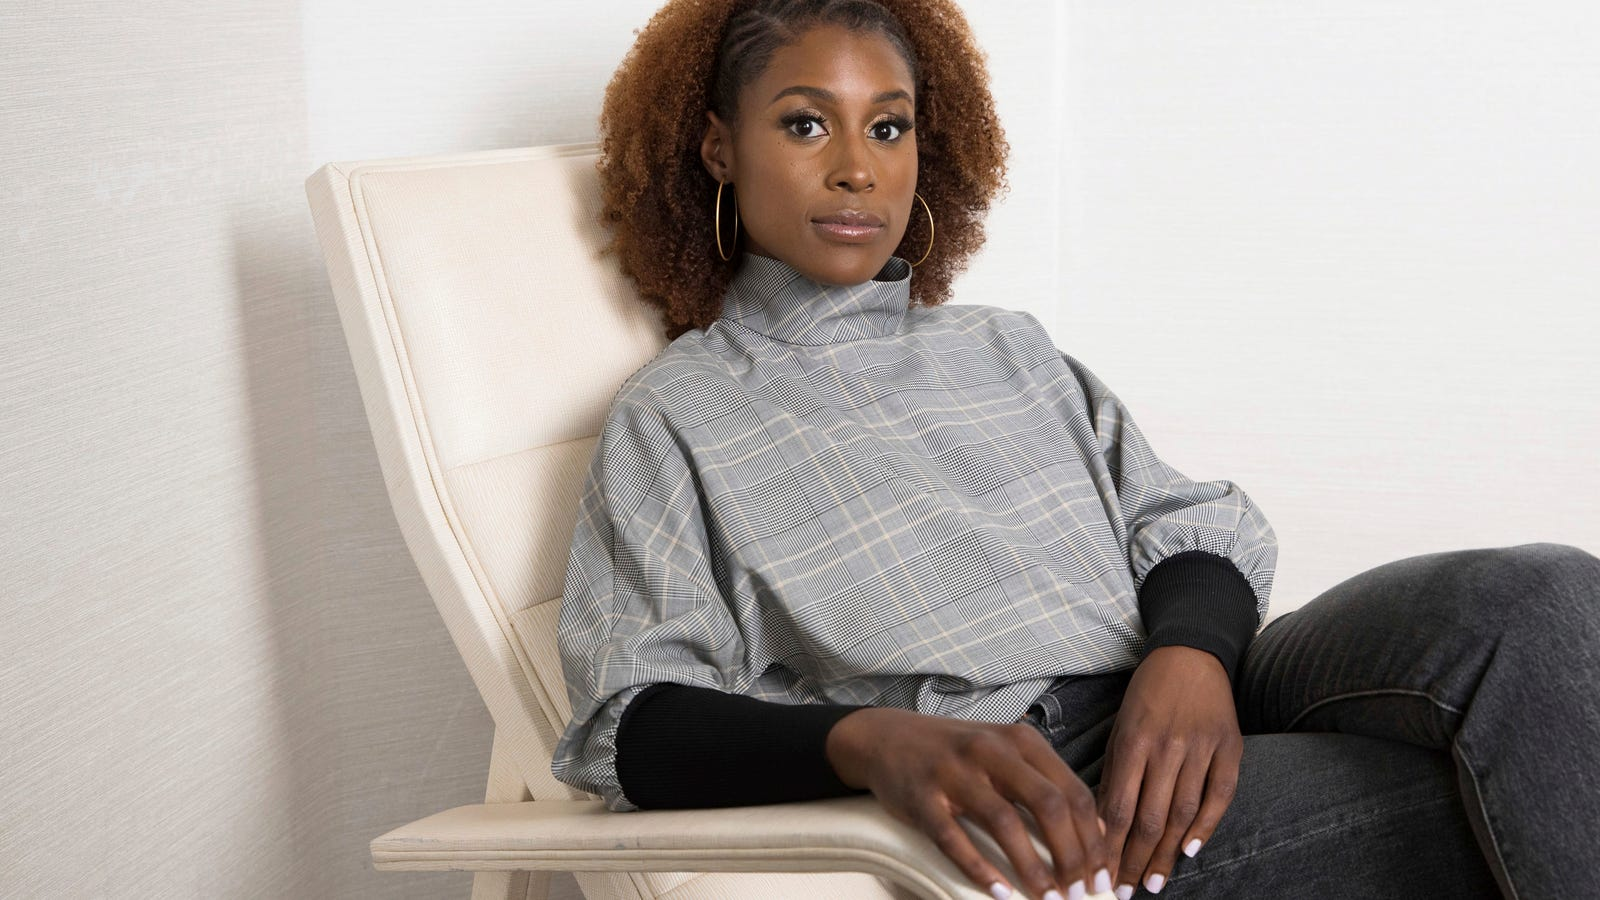 Issa Rae Lands a Major Beauty Campaign as the New Face of CoverGirl